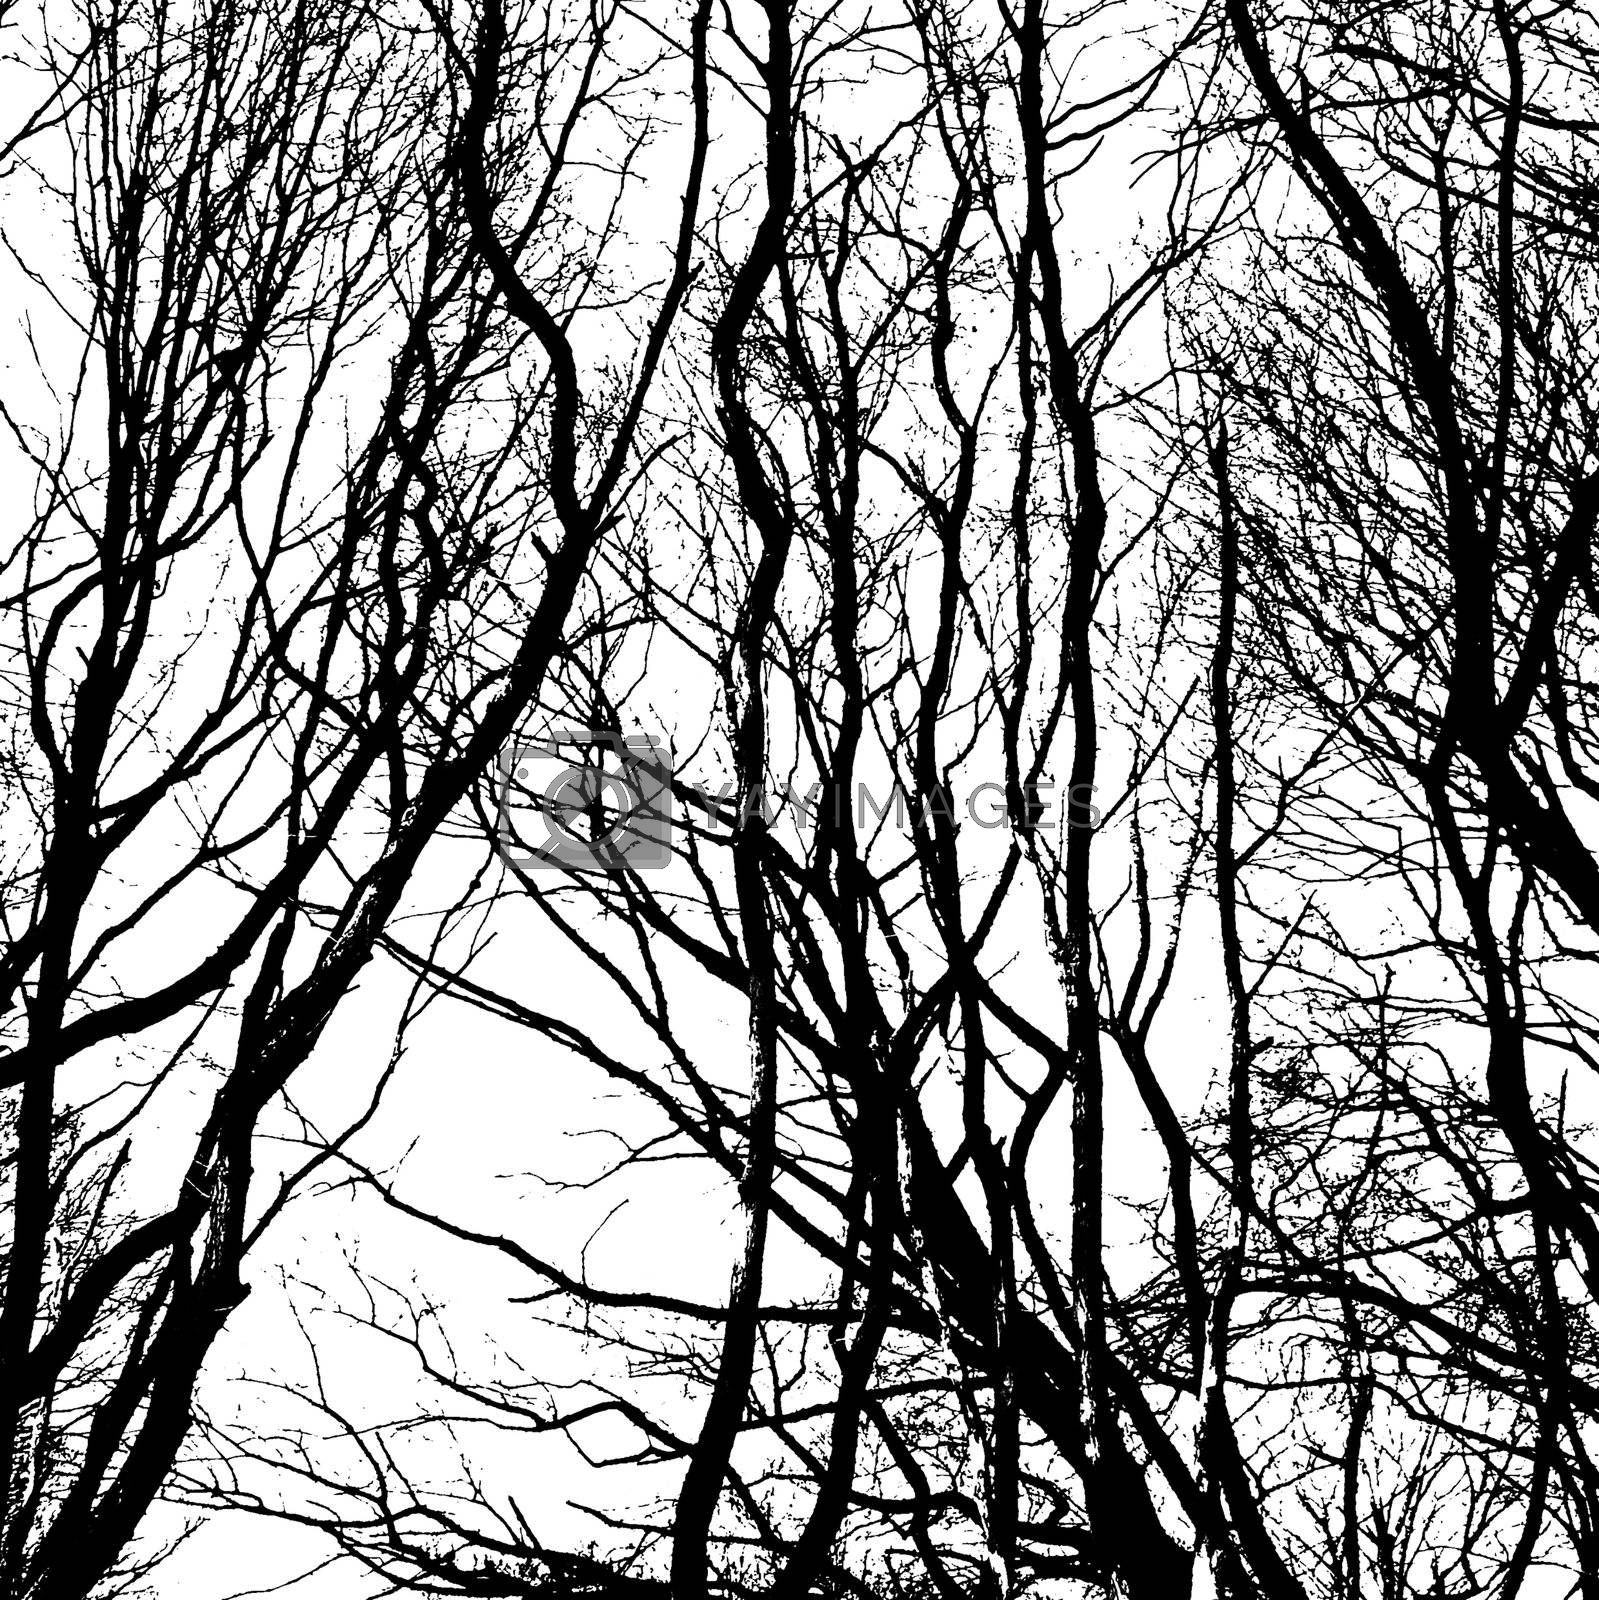 Bare wintry trees in black and white